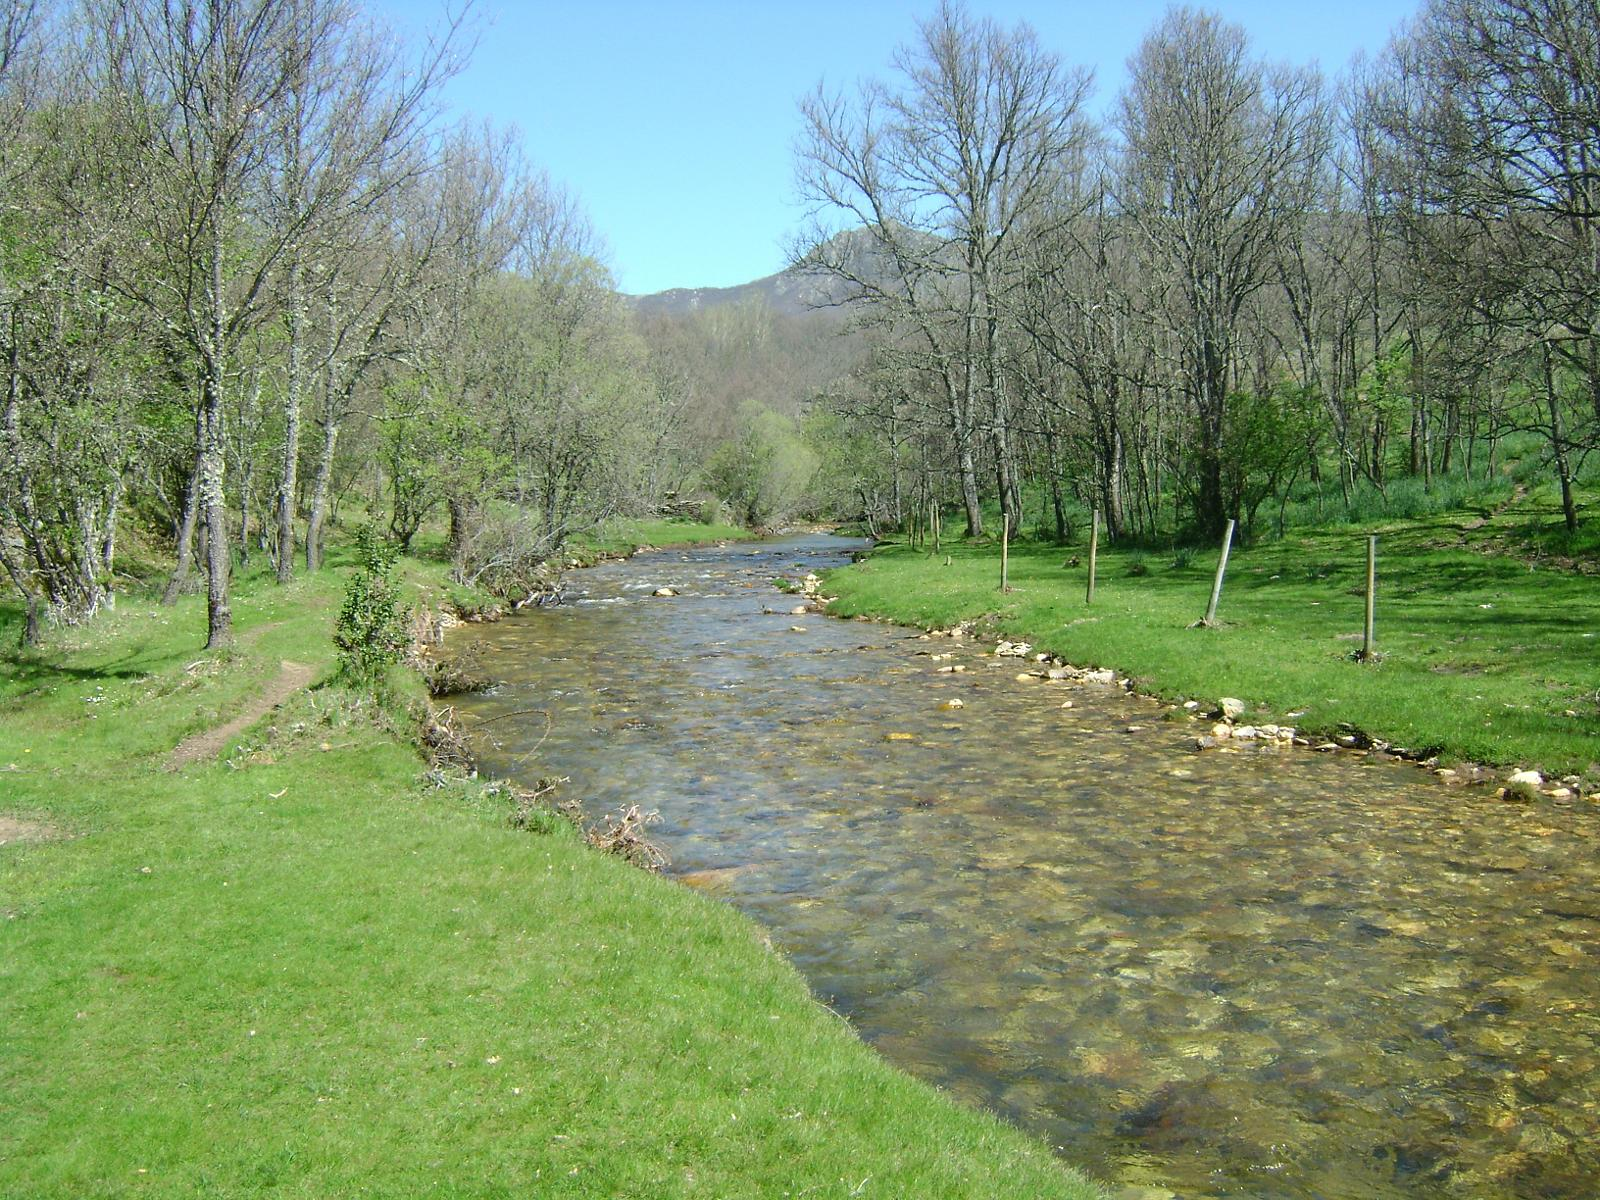 Photo of La Hiruela - Ruta de Molino a Molino y Dehesa